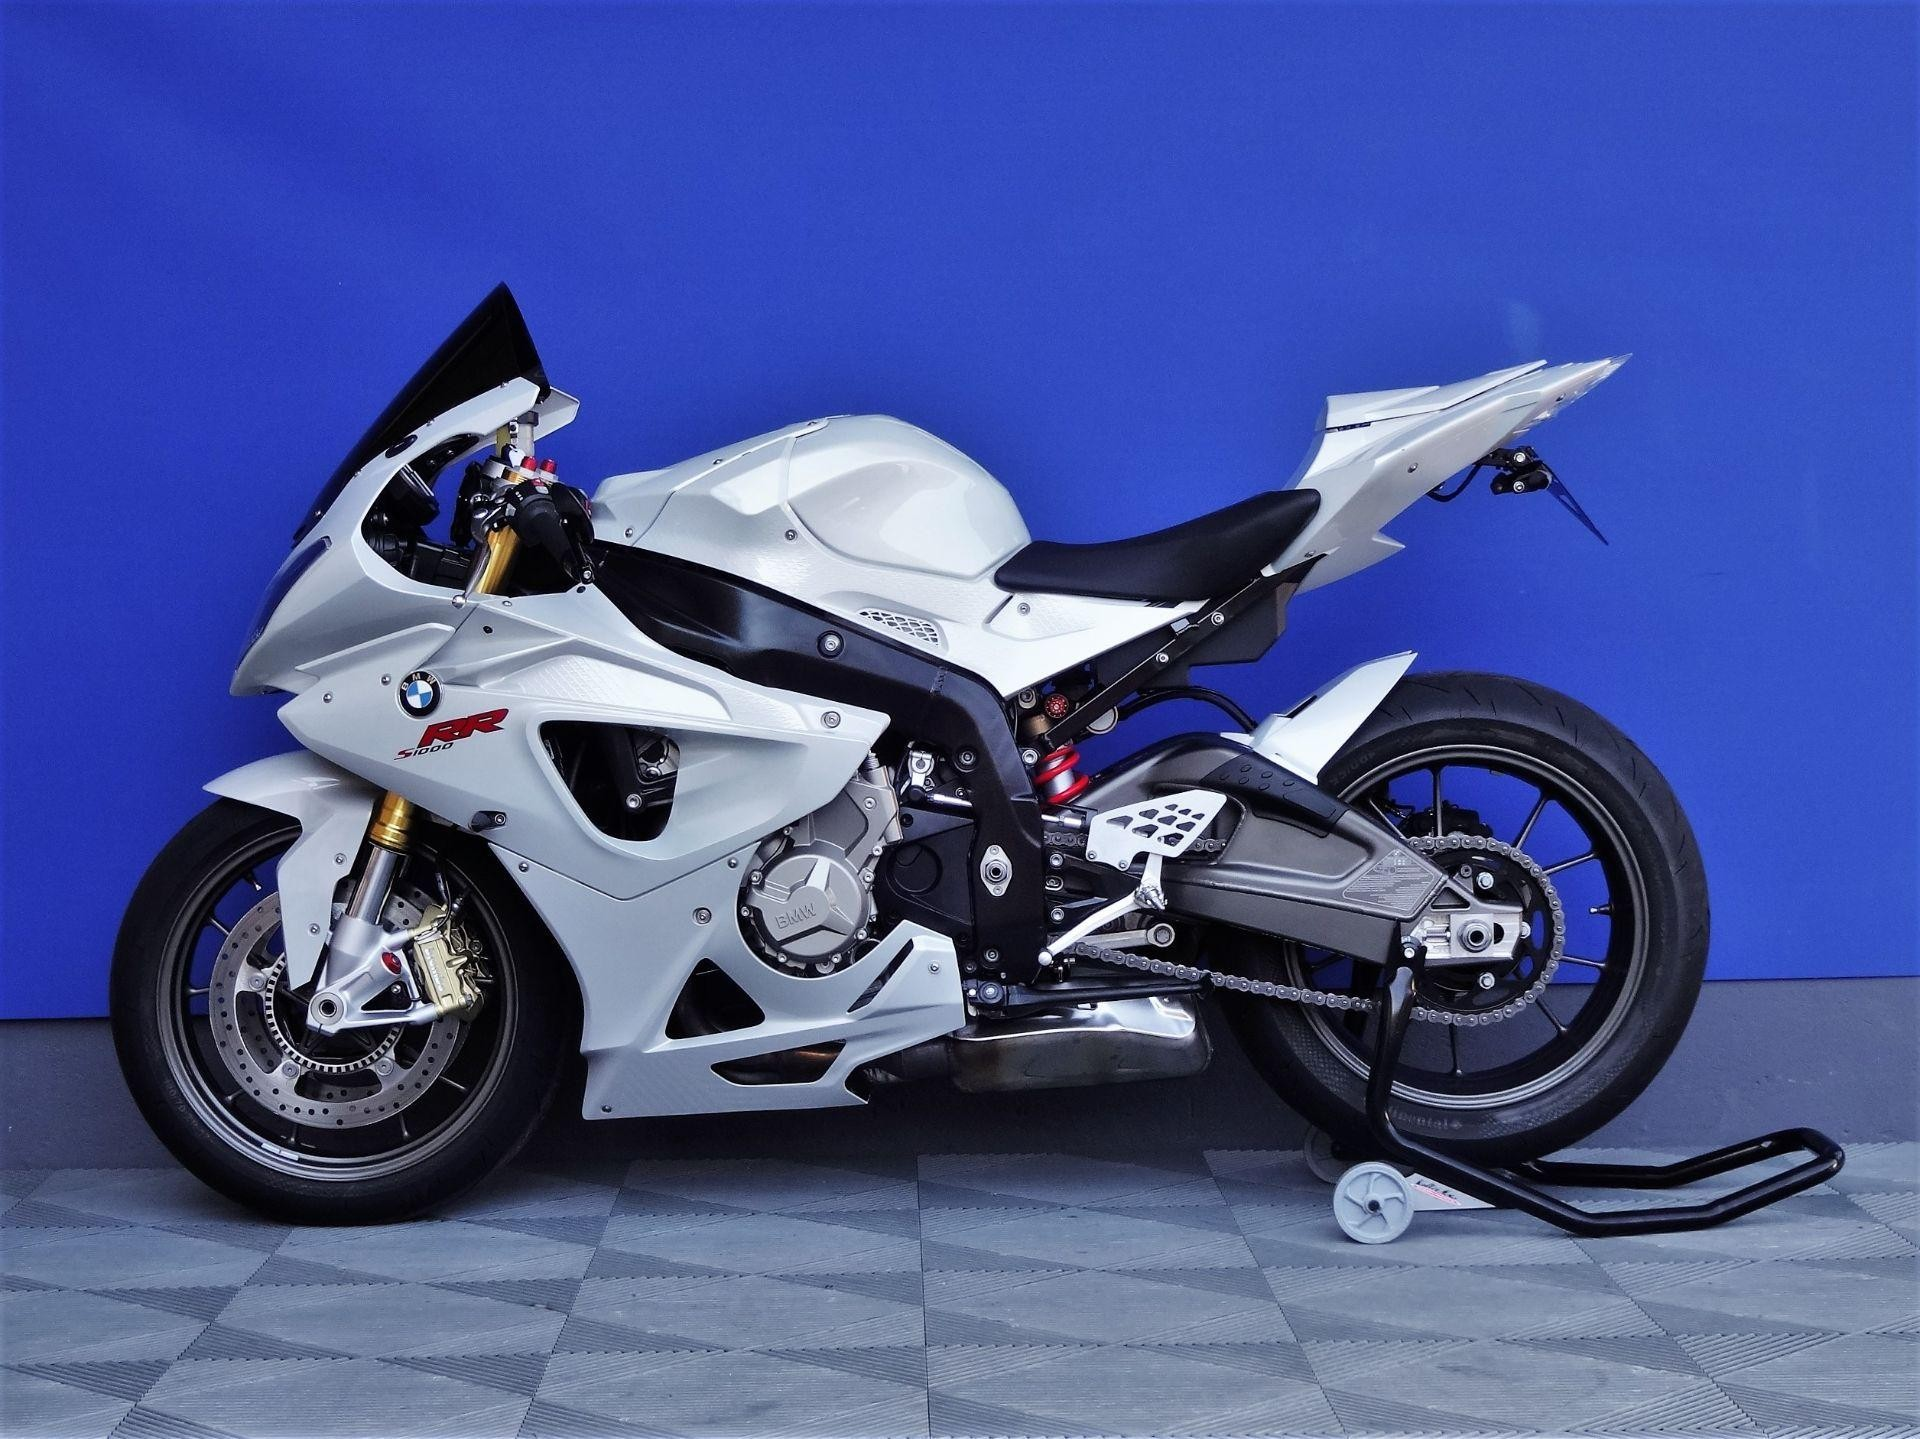 bmw s 1000 rr abs akrapovic vogel motorbikes sch pfheim occasion. Black Bedroom Furniture Sets. Home Design Ideas